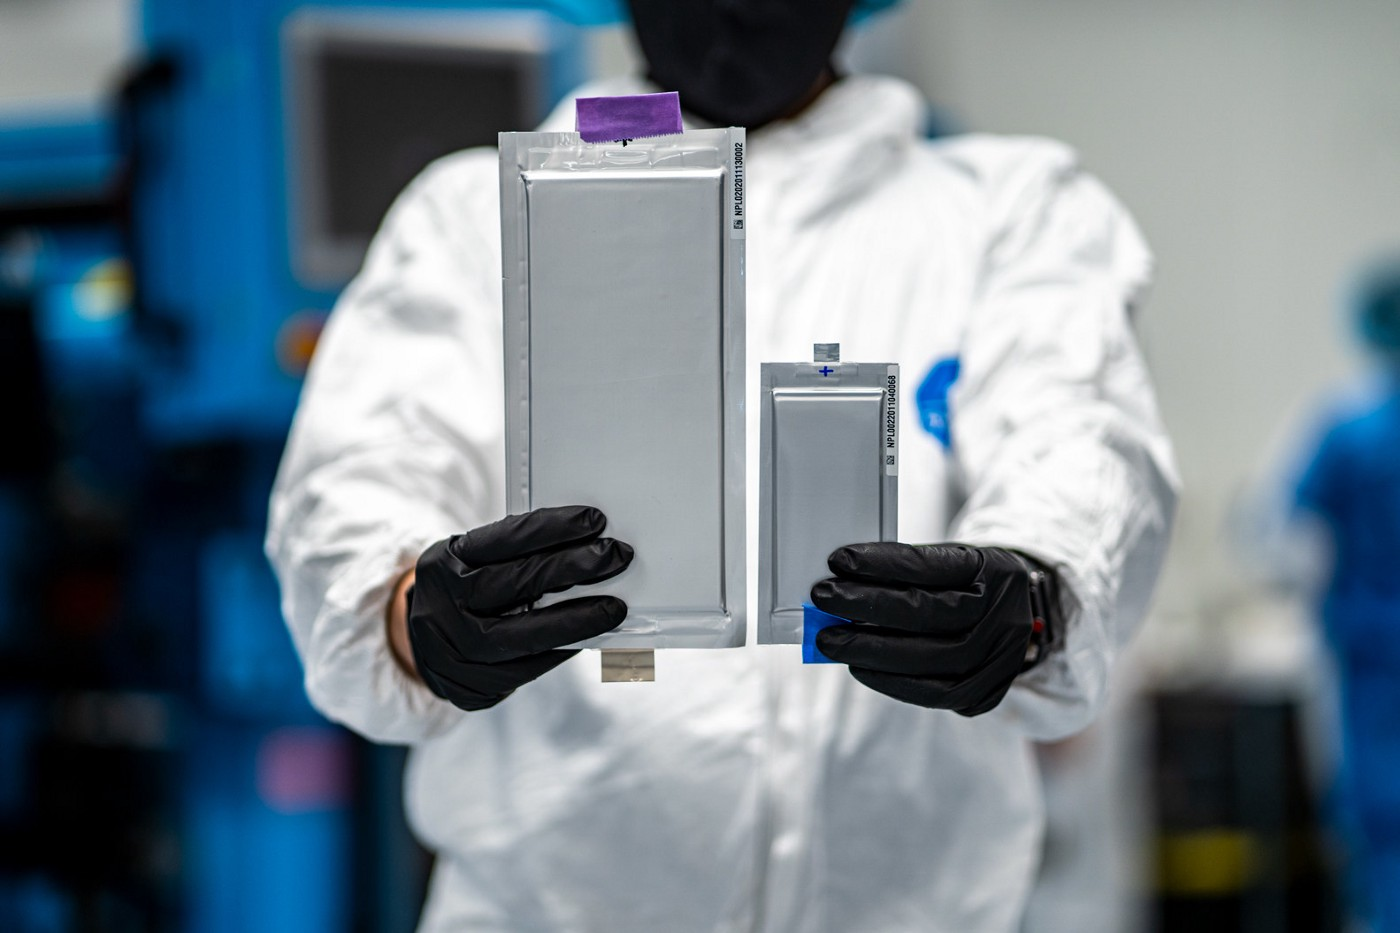 Solid Power's 22-layer, 20Ah all solid-state lithium metal cell compared to the company's first-generation 10-layer, 2Ah cell